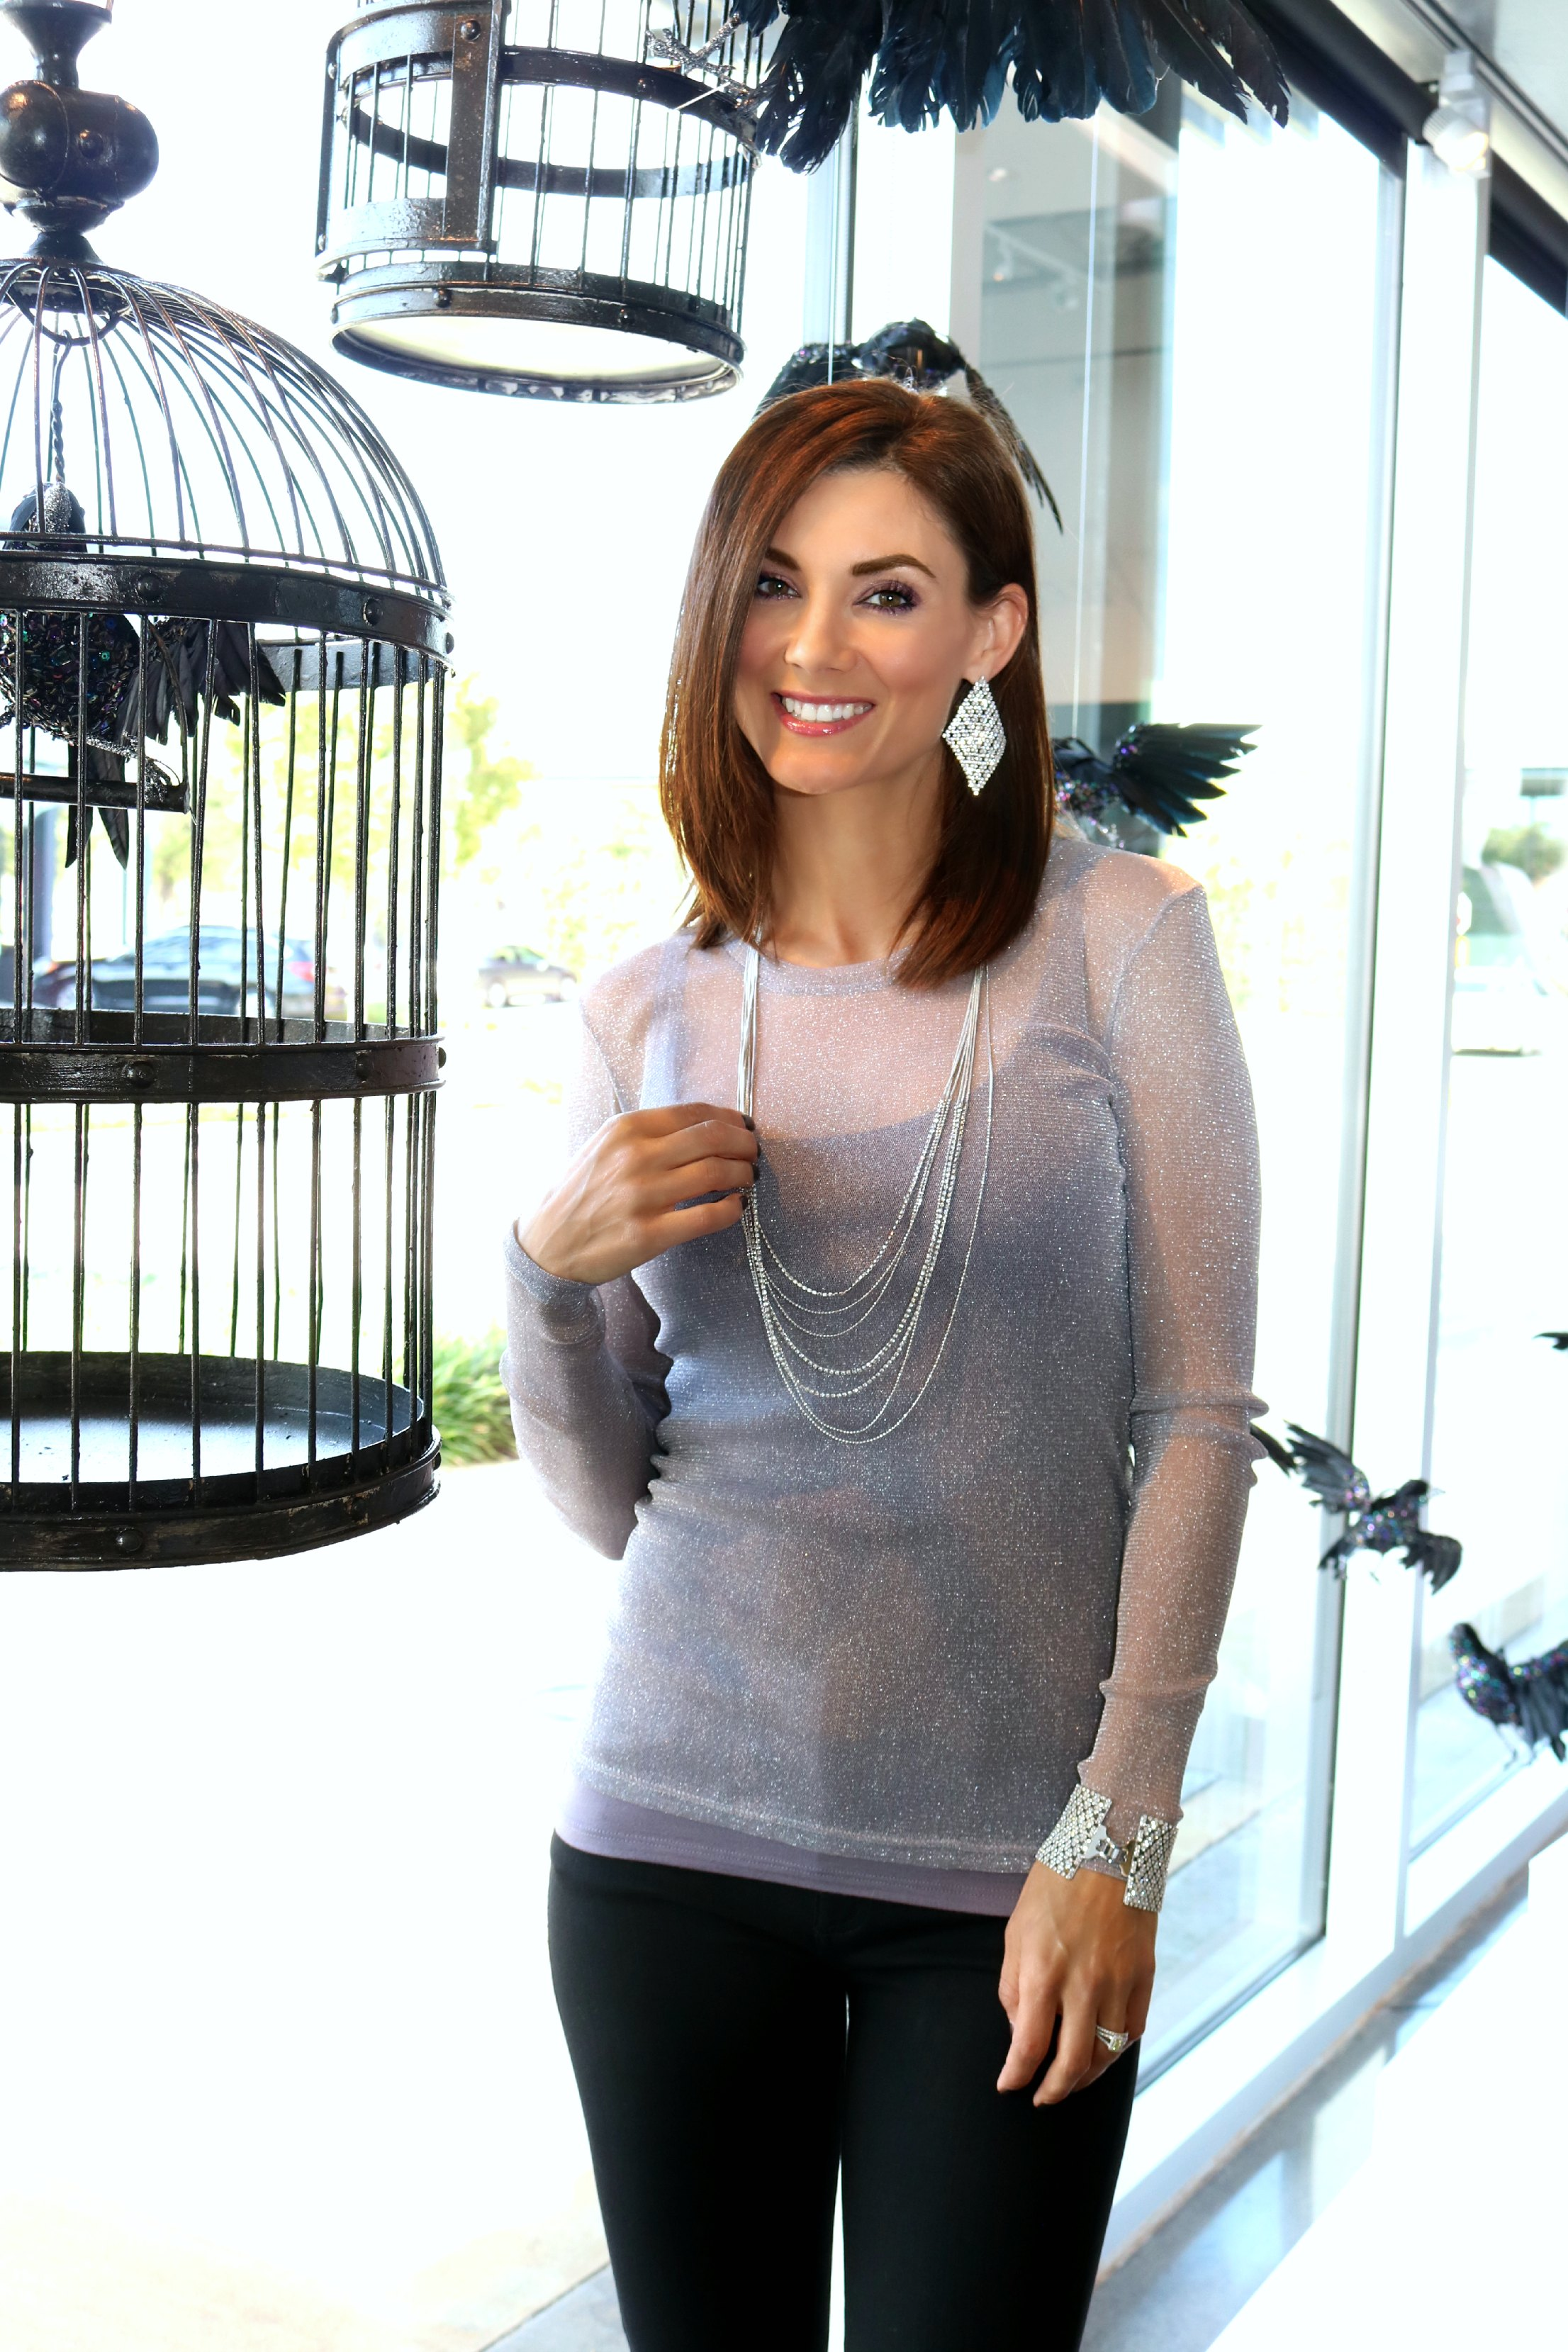 Only Hearts Glitter Shimmer Long Sleeve and  Only Heart So Fine Skinny Tank in Smoked Tea ,  Diamond Shaped Chandelier earrings in white gold .